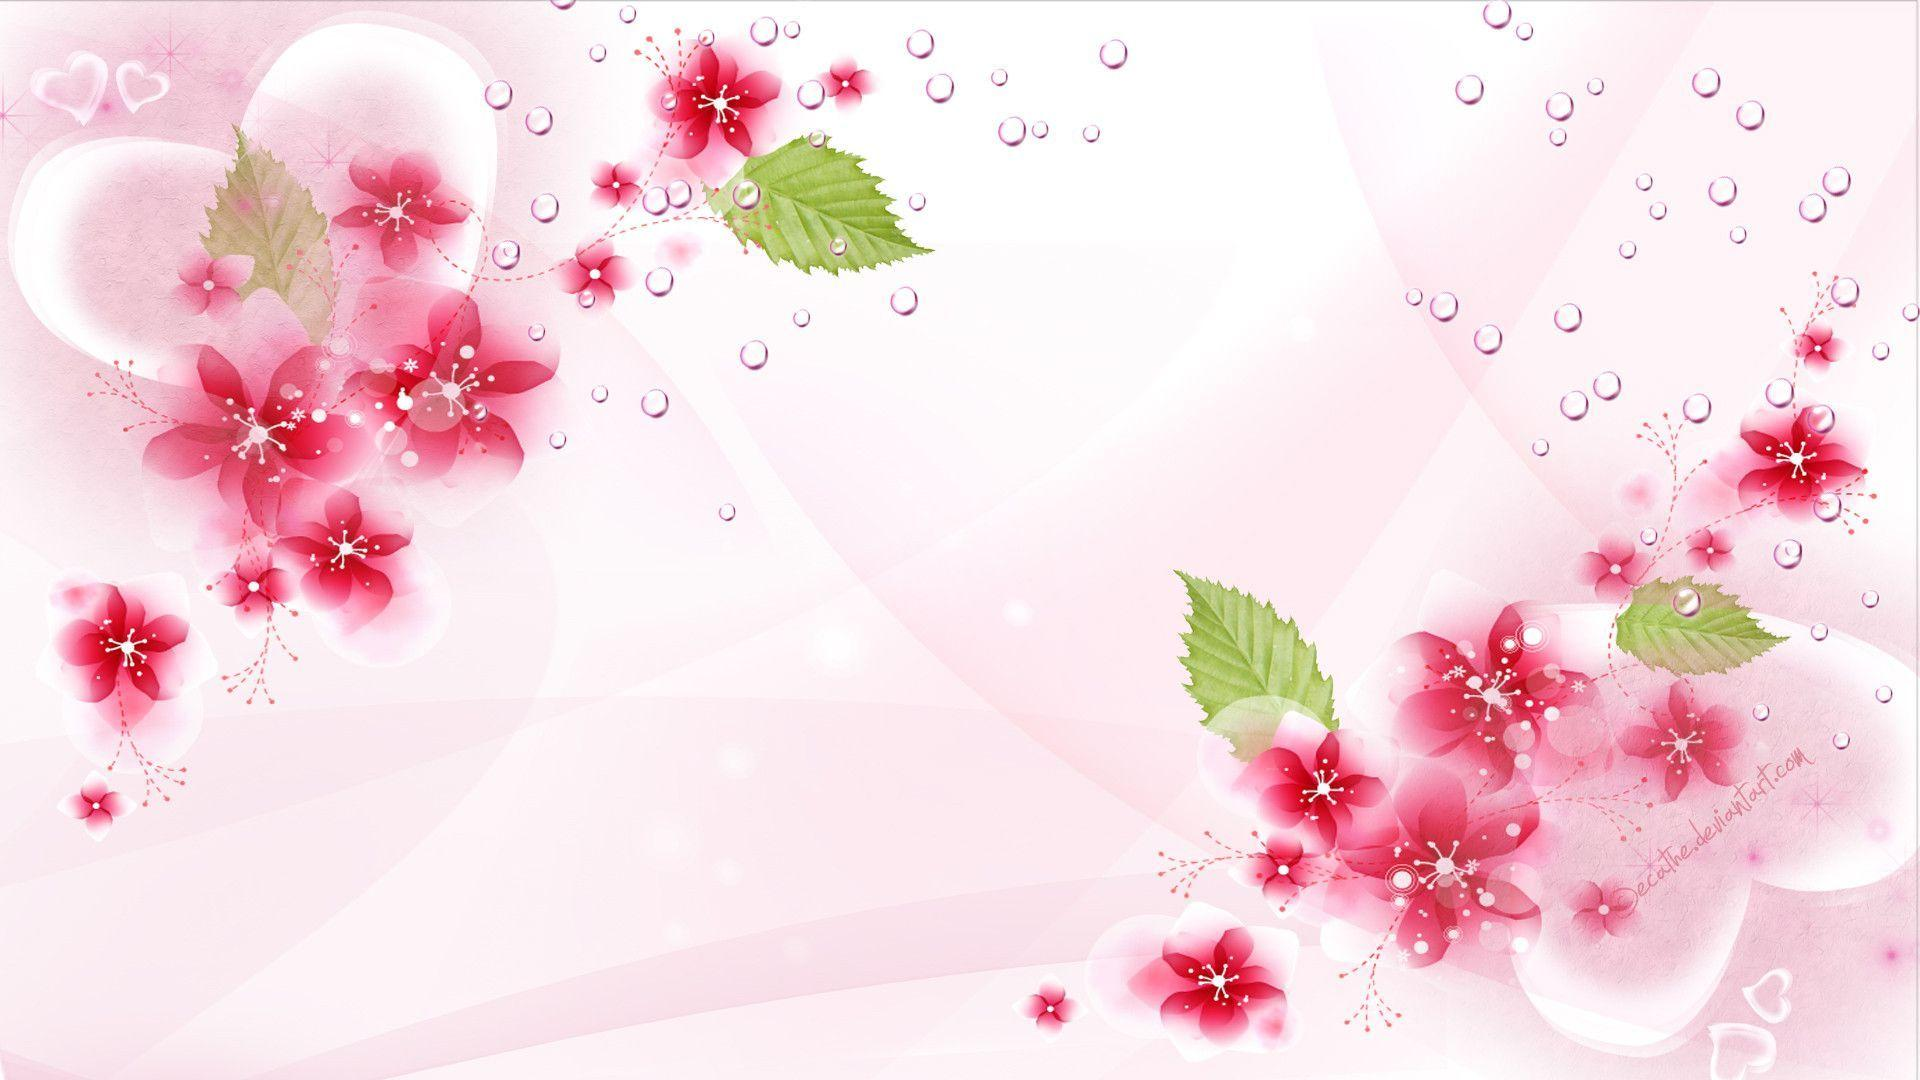 Fondos Flores Hd: Rose Flowers Backgrounds